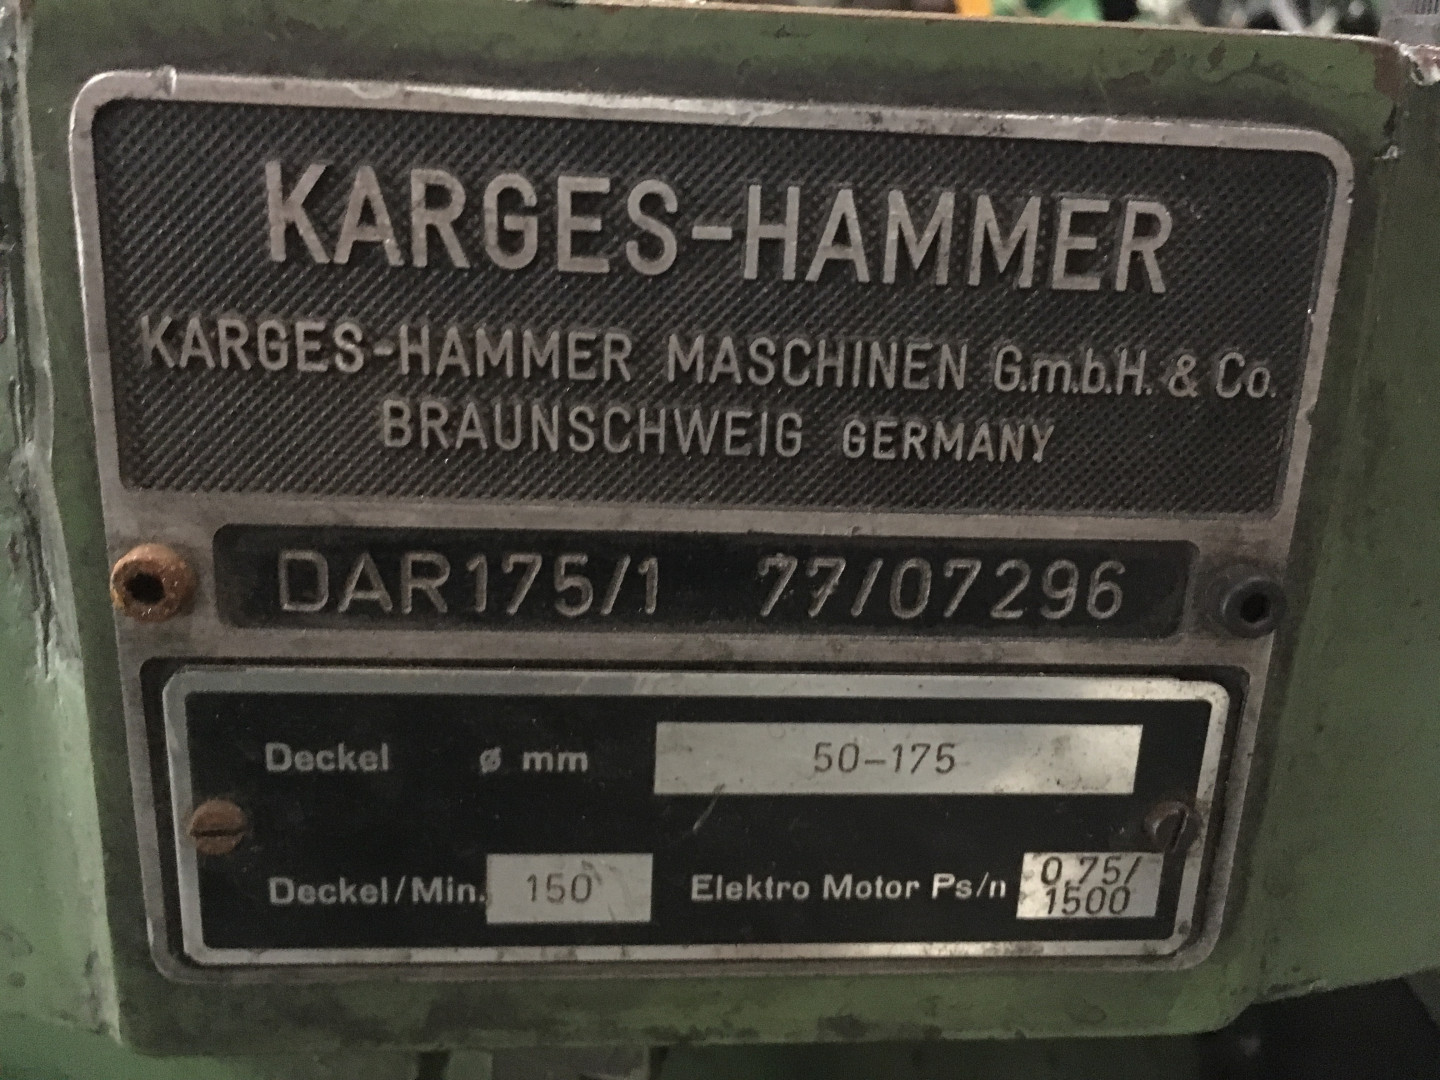 Karges Hammer DAR 175/1 ourleuse à disque